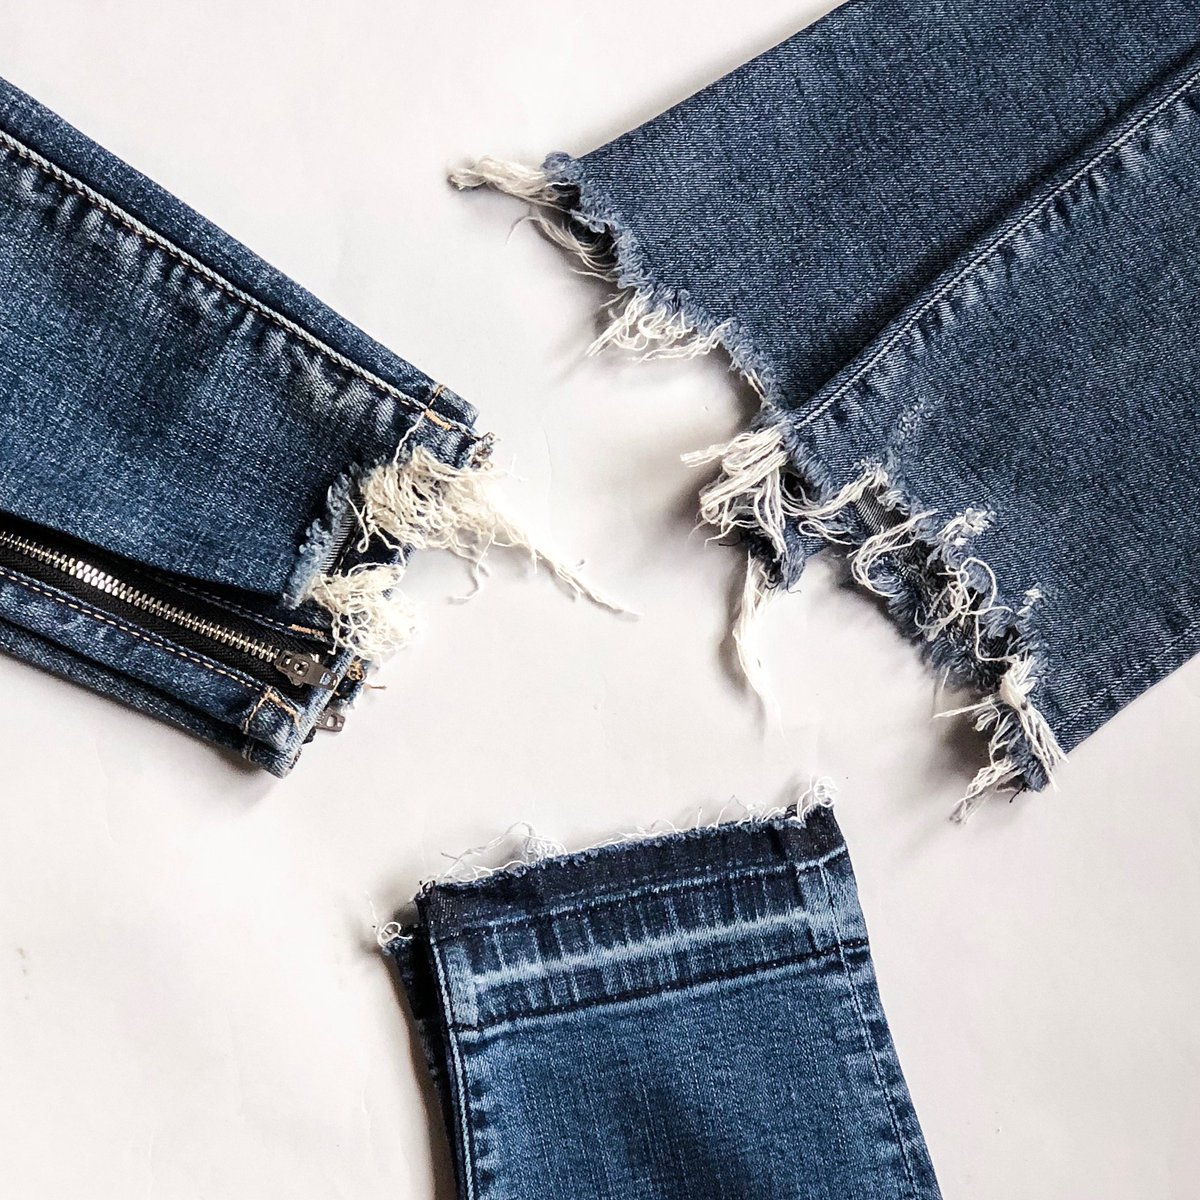 f02445db8c3f76 Shop our denim now-->  https://www.handinpocket.com/collections/jeans-1?page=1 … #agolde  #LiveAGOLDE #denimnecessities #everydayneeds #americanfashion ...